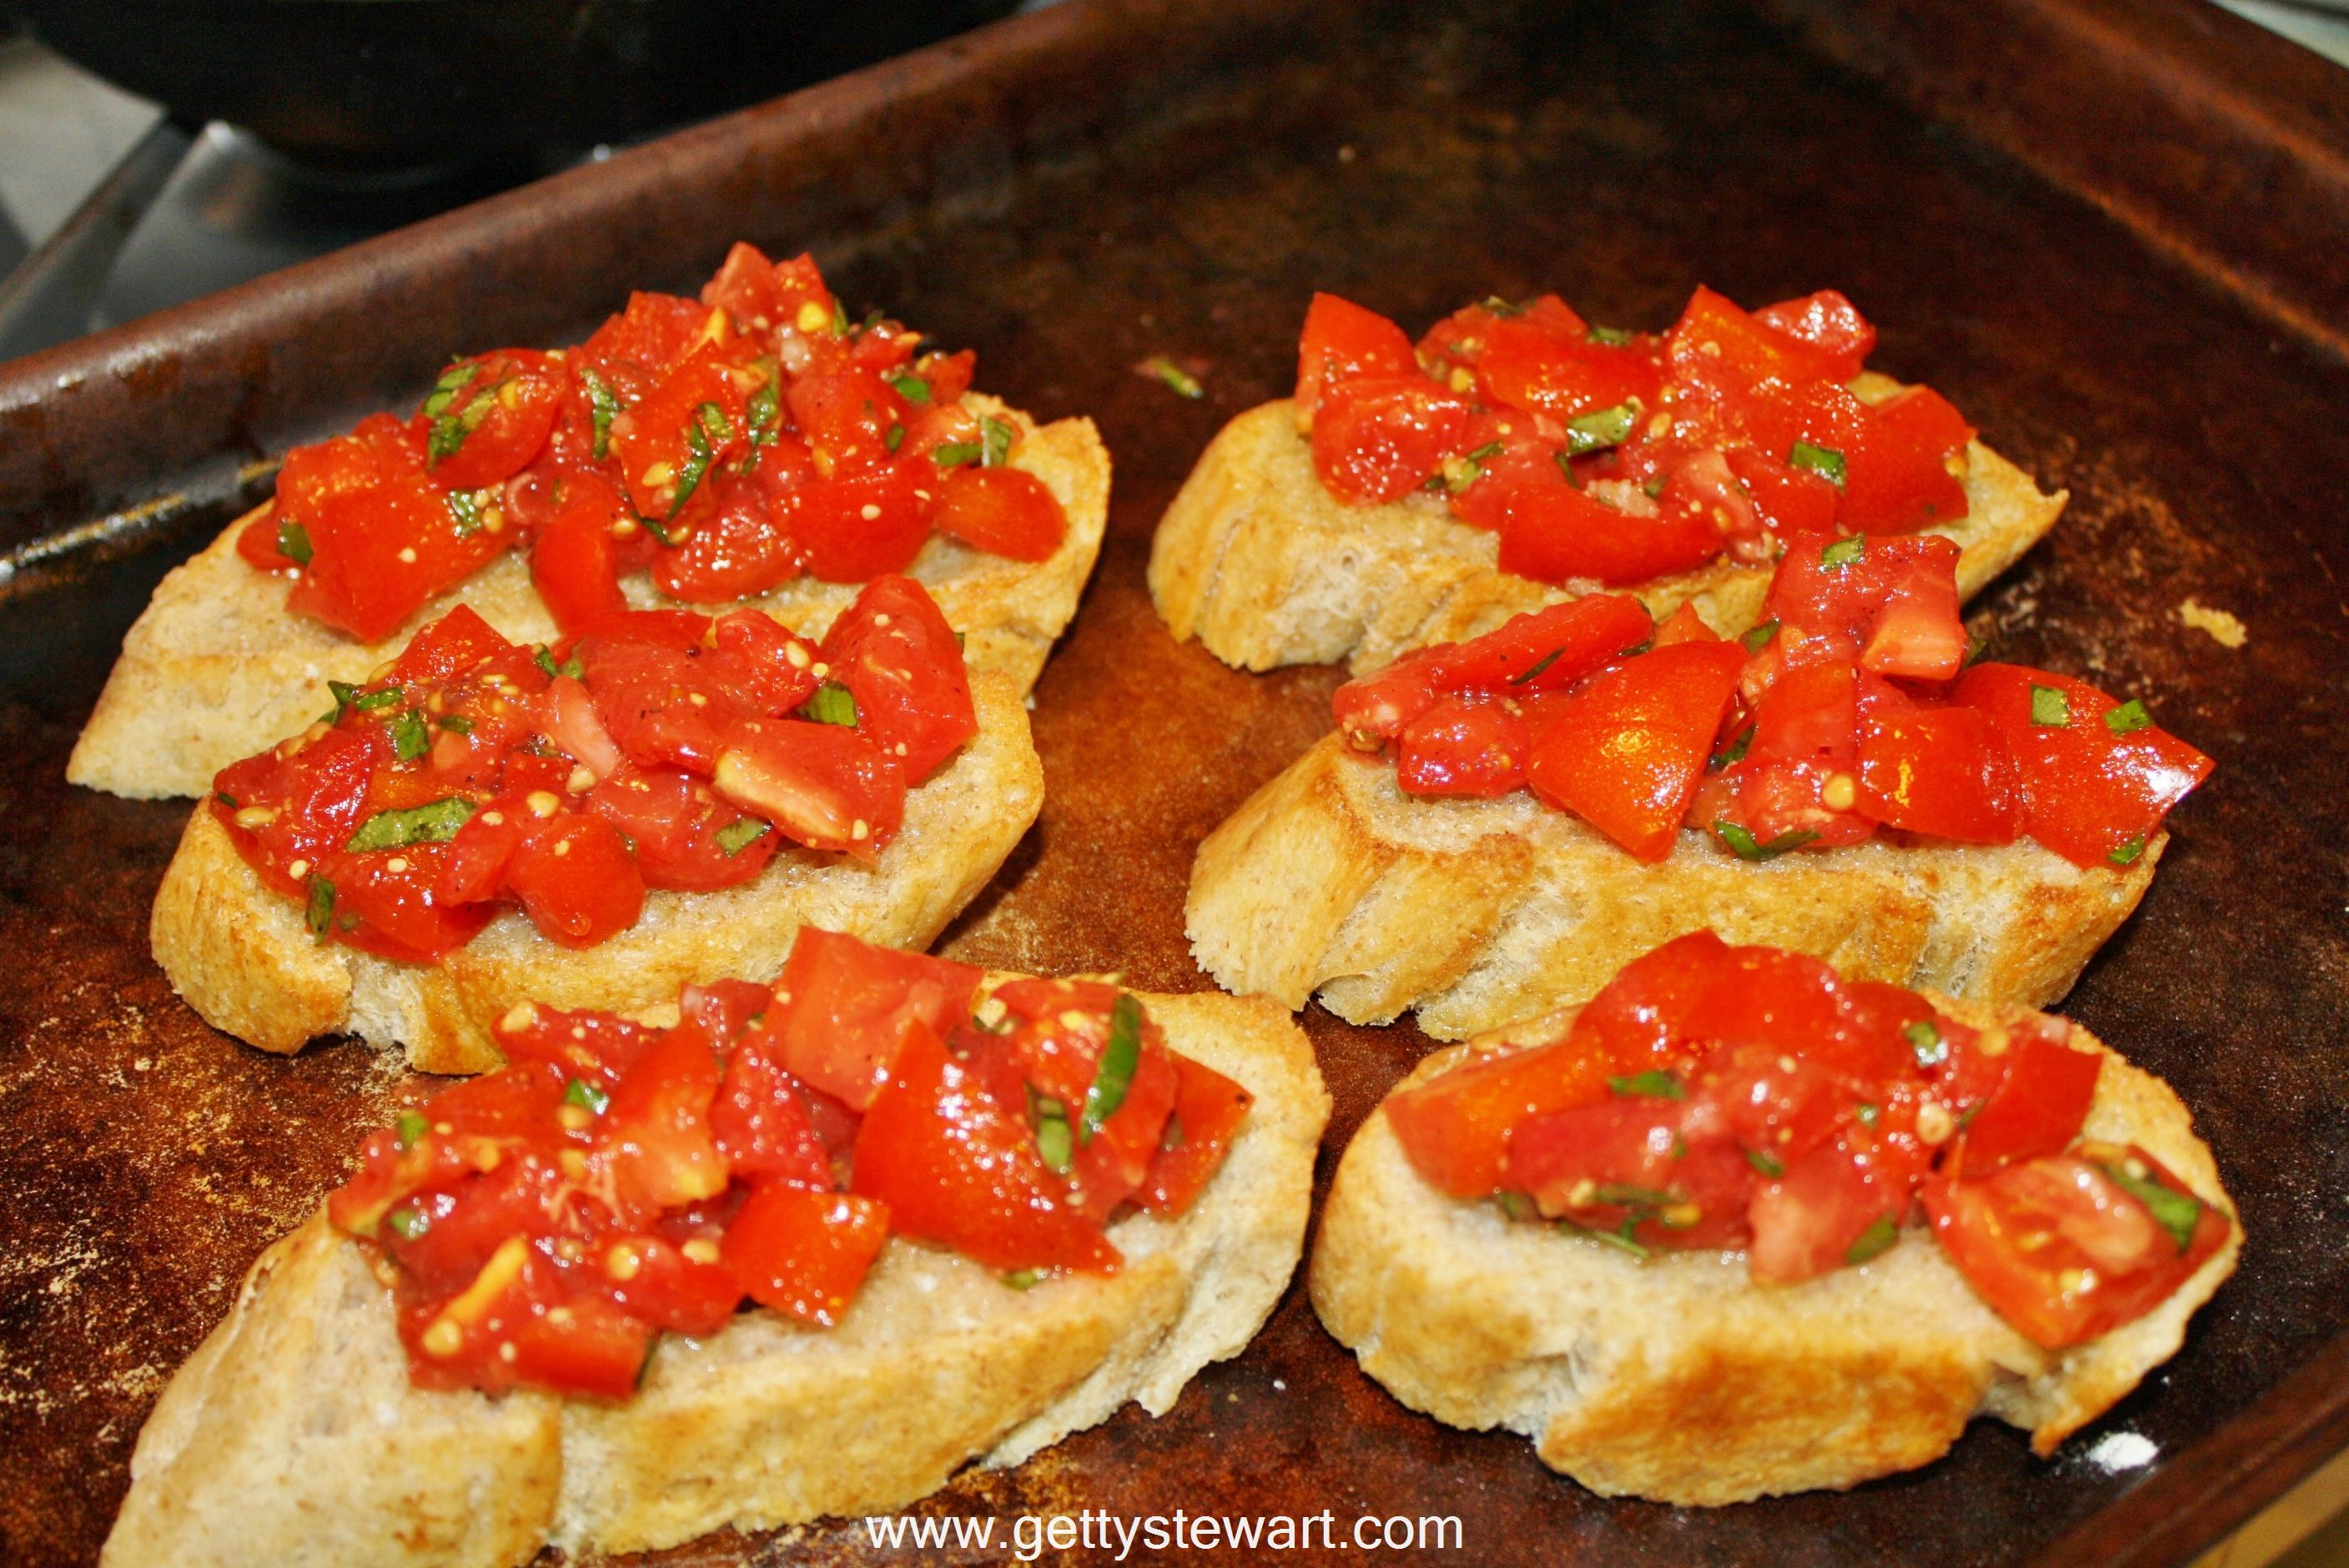 how to toast bread in oven for bruschetta